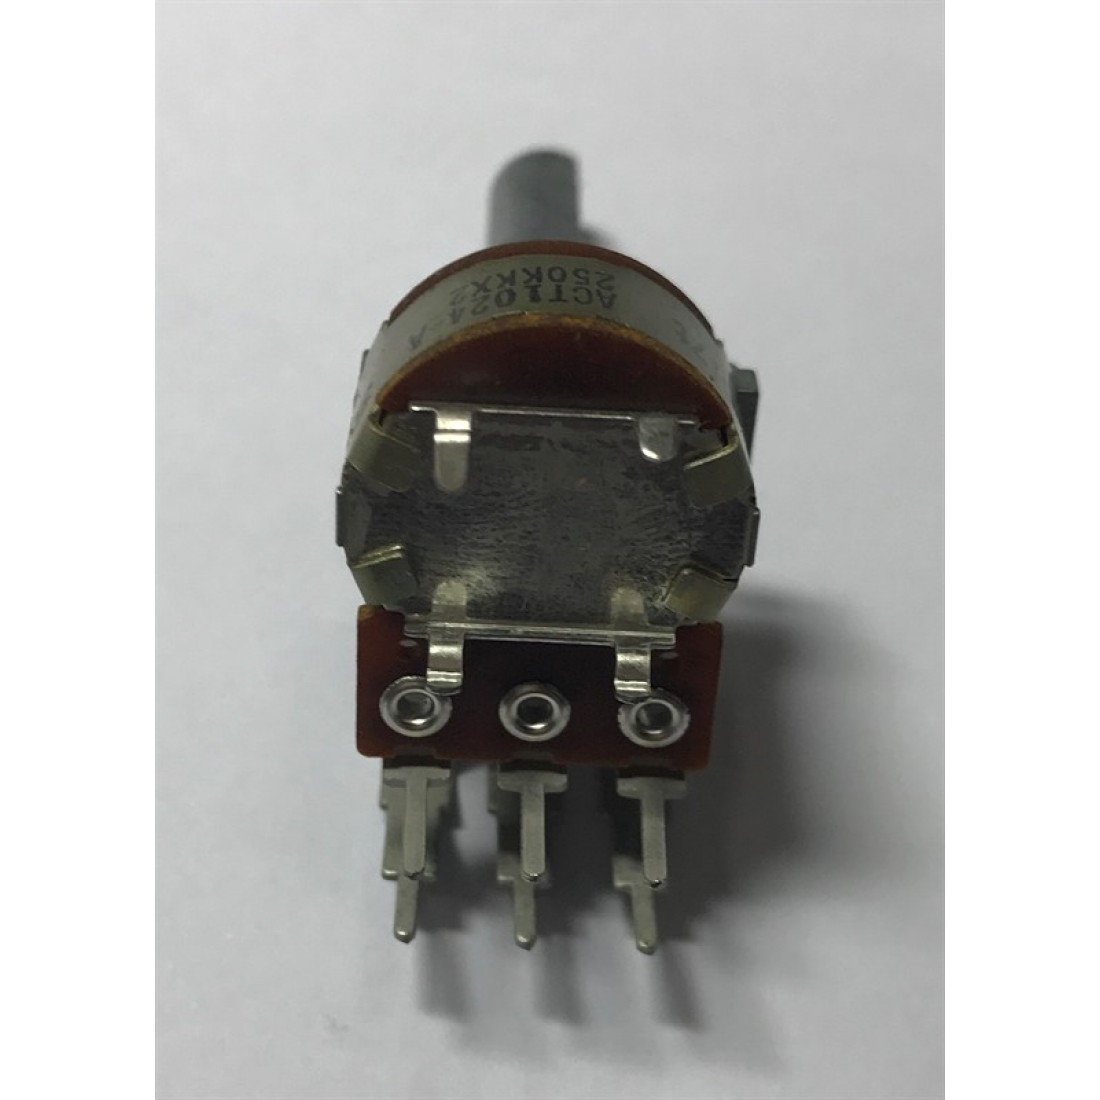 Variable Resistor Act 1024 Var Pioneer Original Circuit With Spare Parts Electronic Pantazopoulos Music Sound